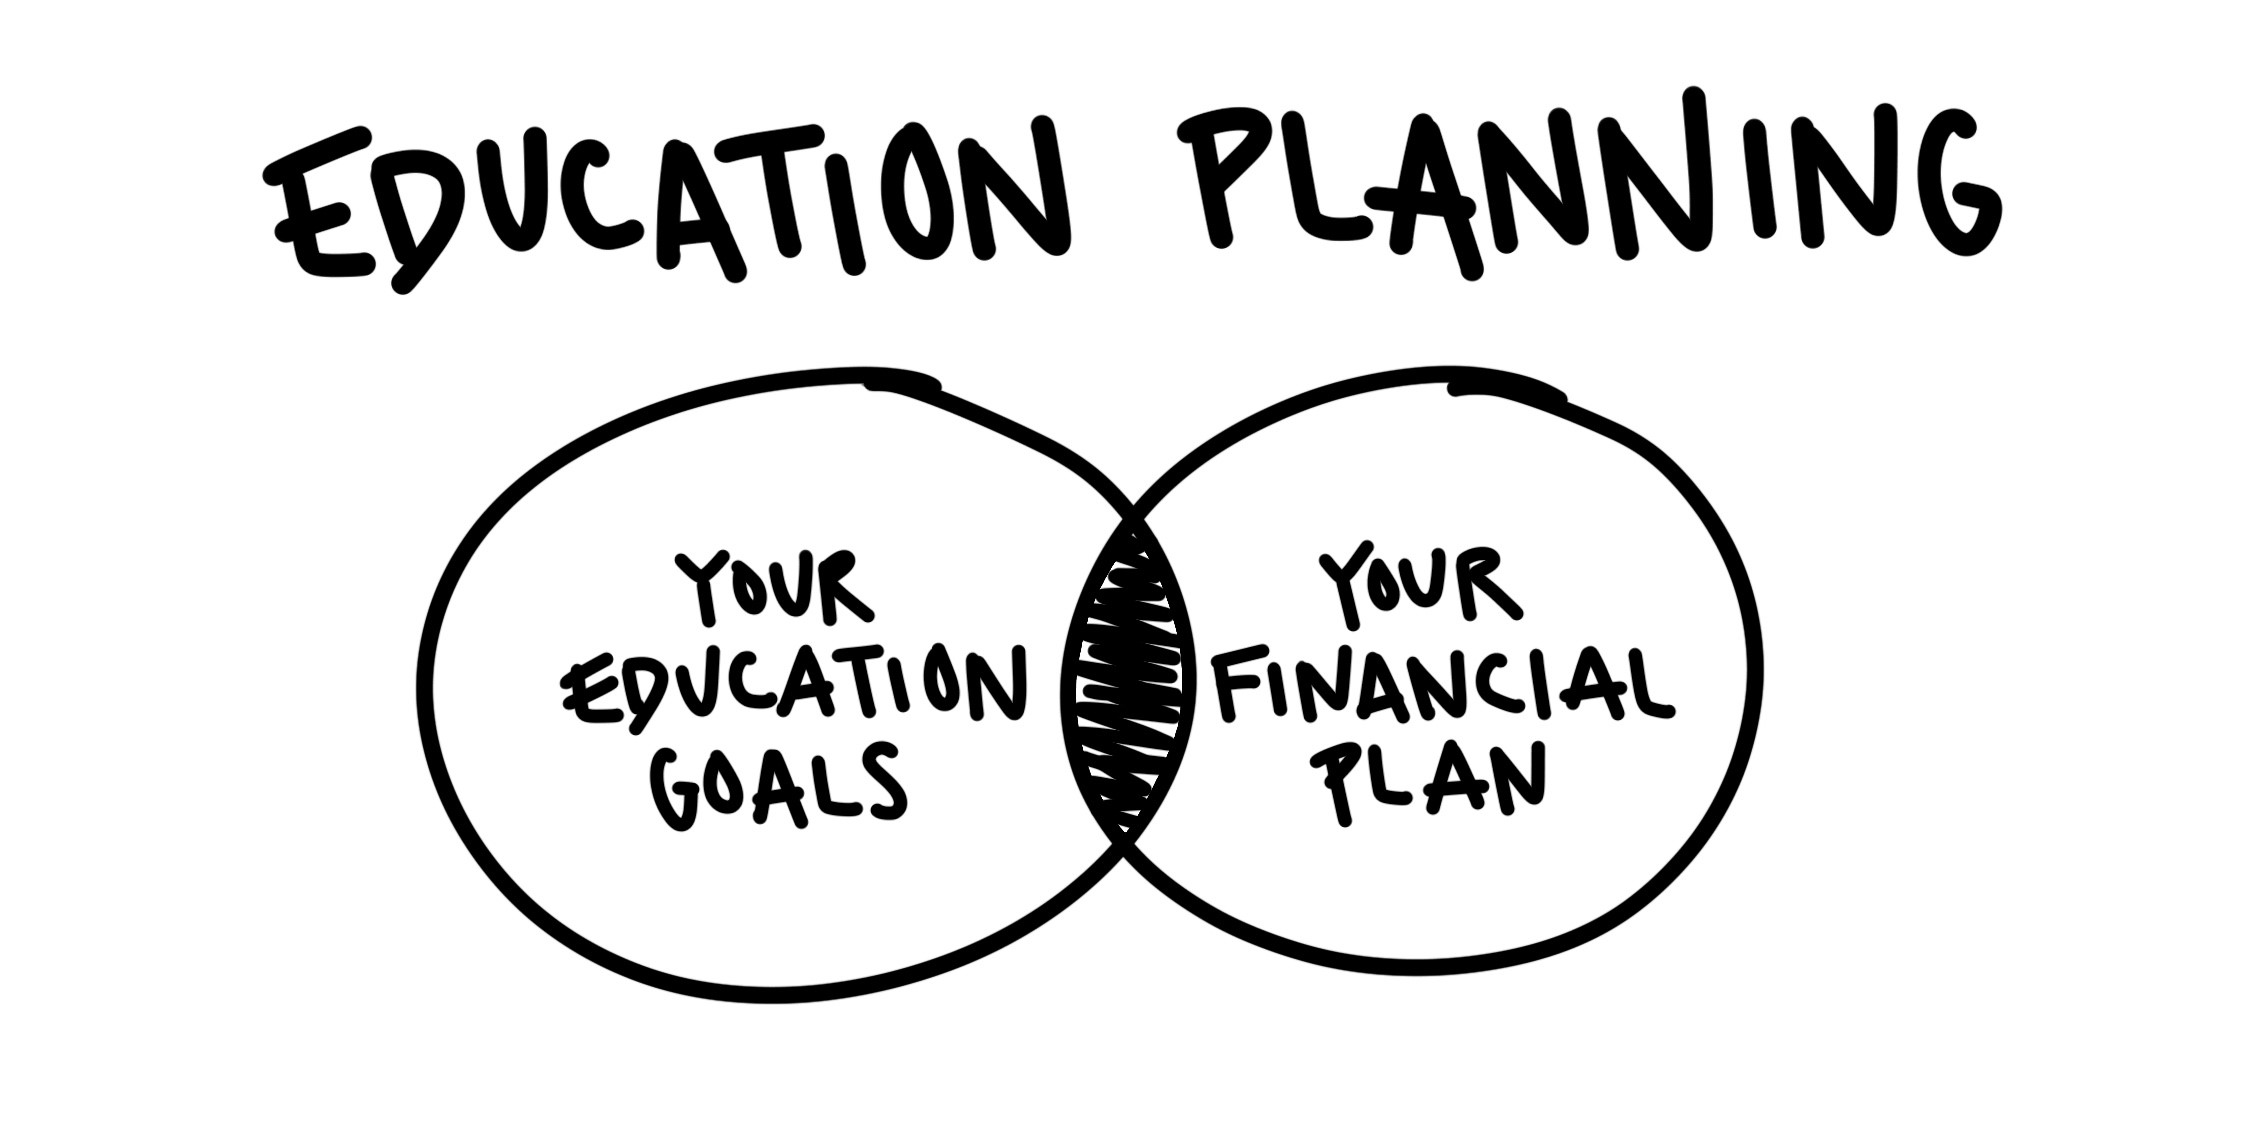 Education Plans Lack Clarity On >> Education Planning Guillaume Freckman Inc